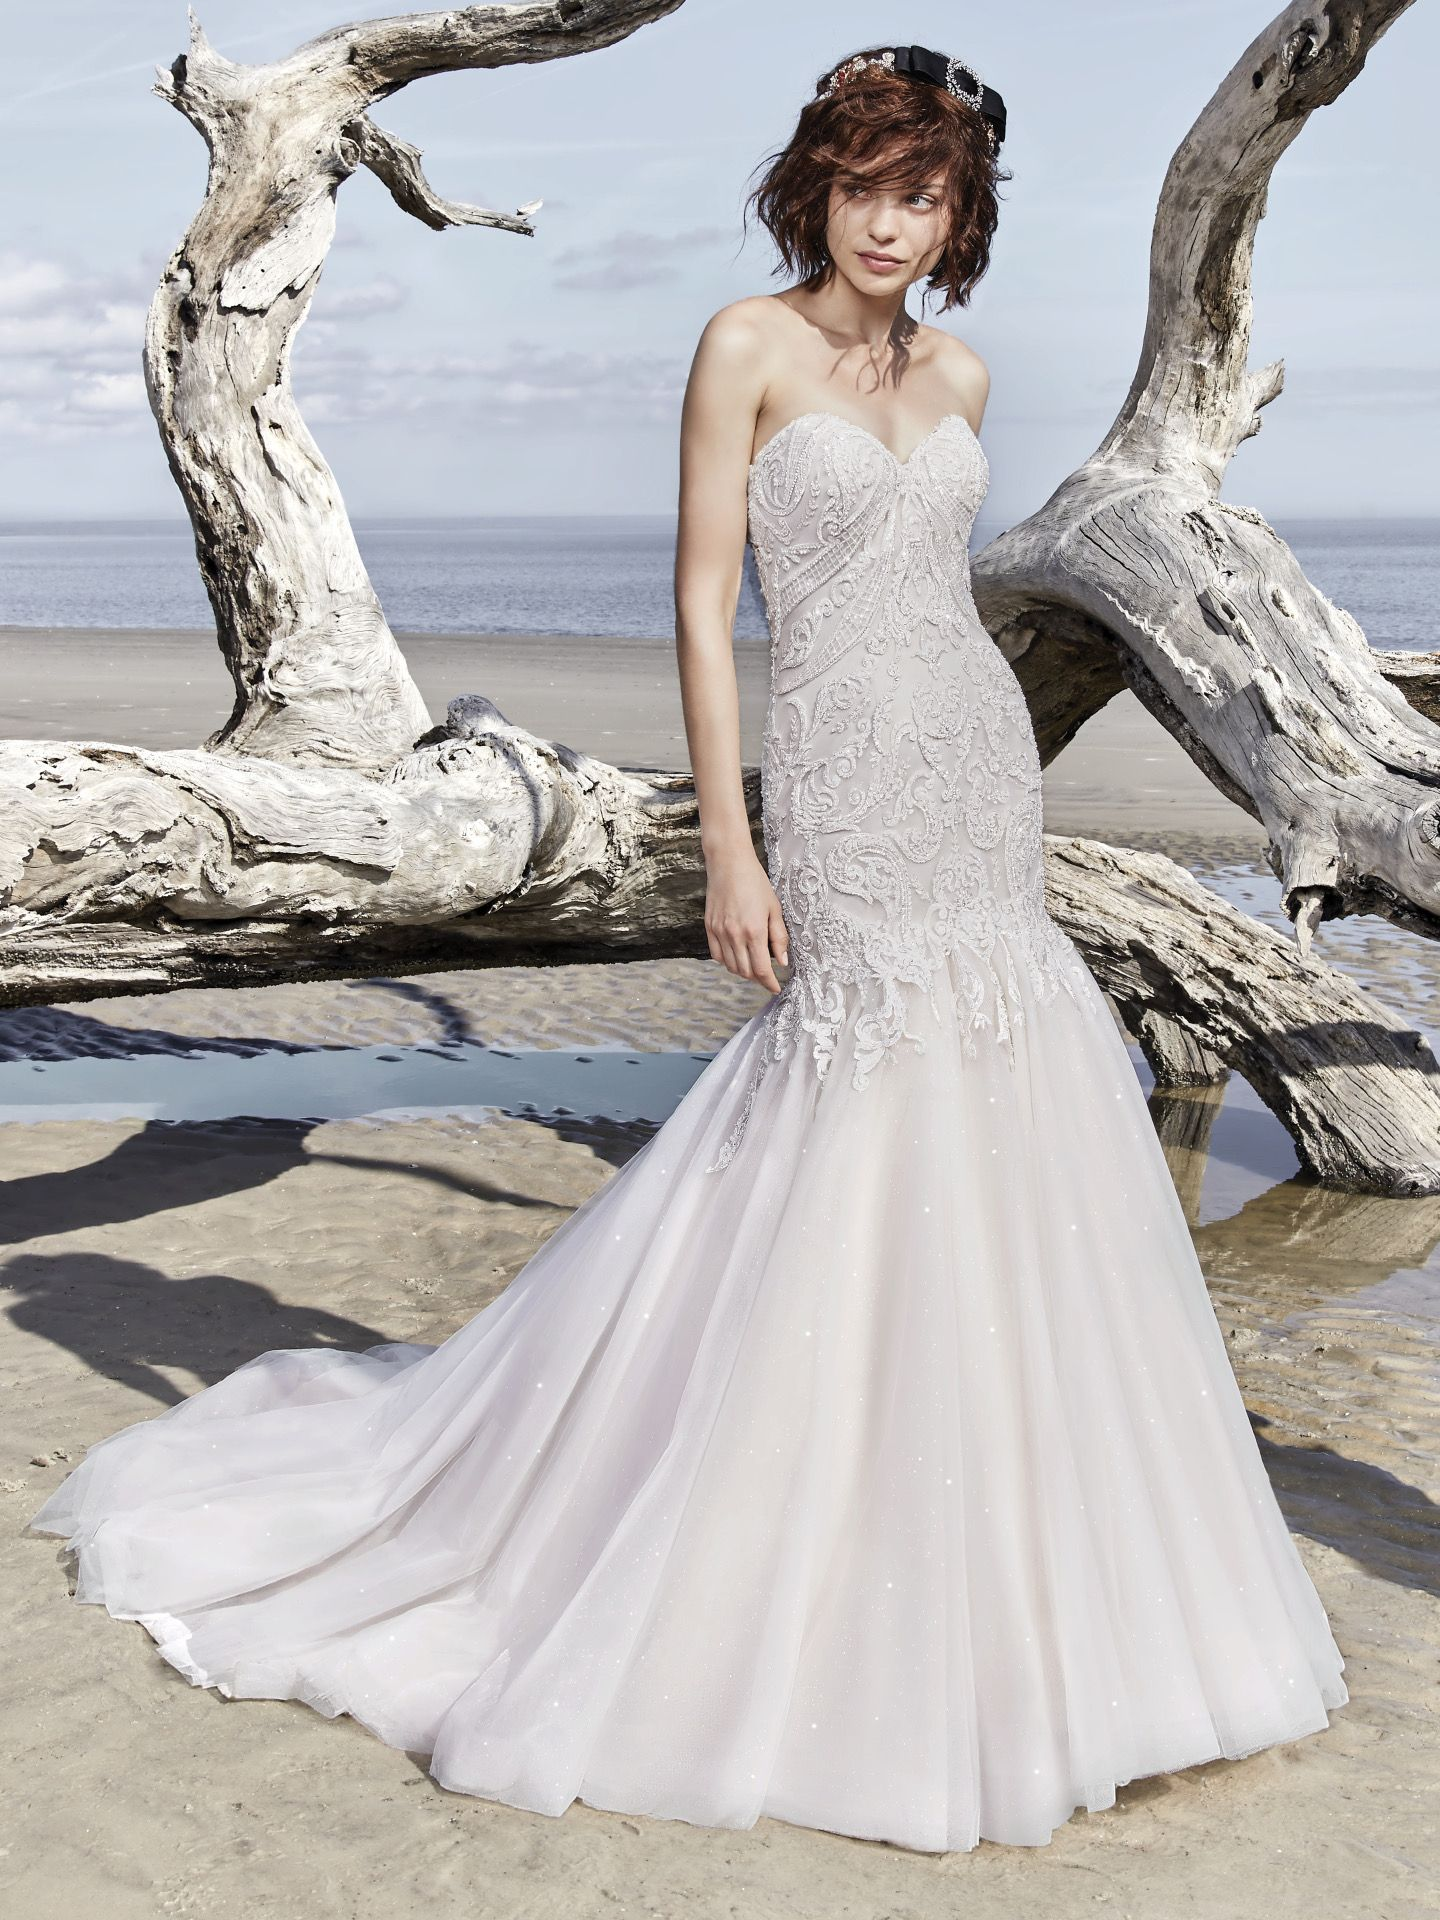 Wedding Dresses Clearance Sale